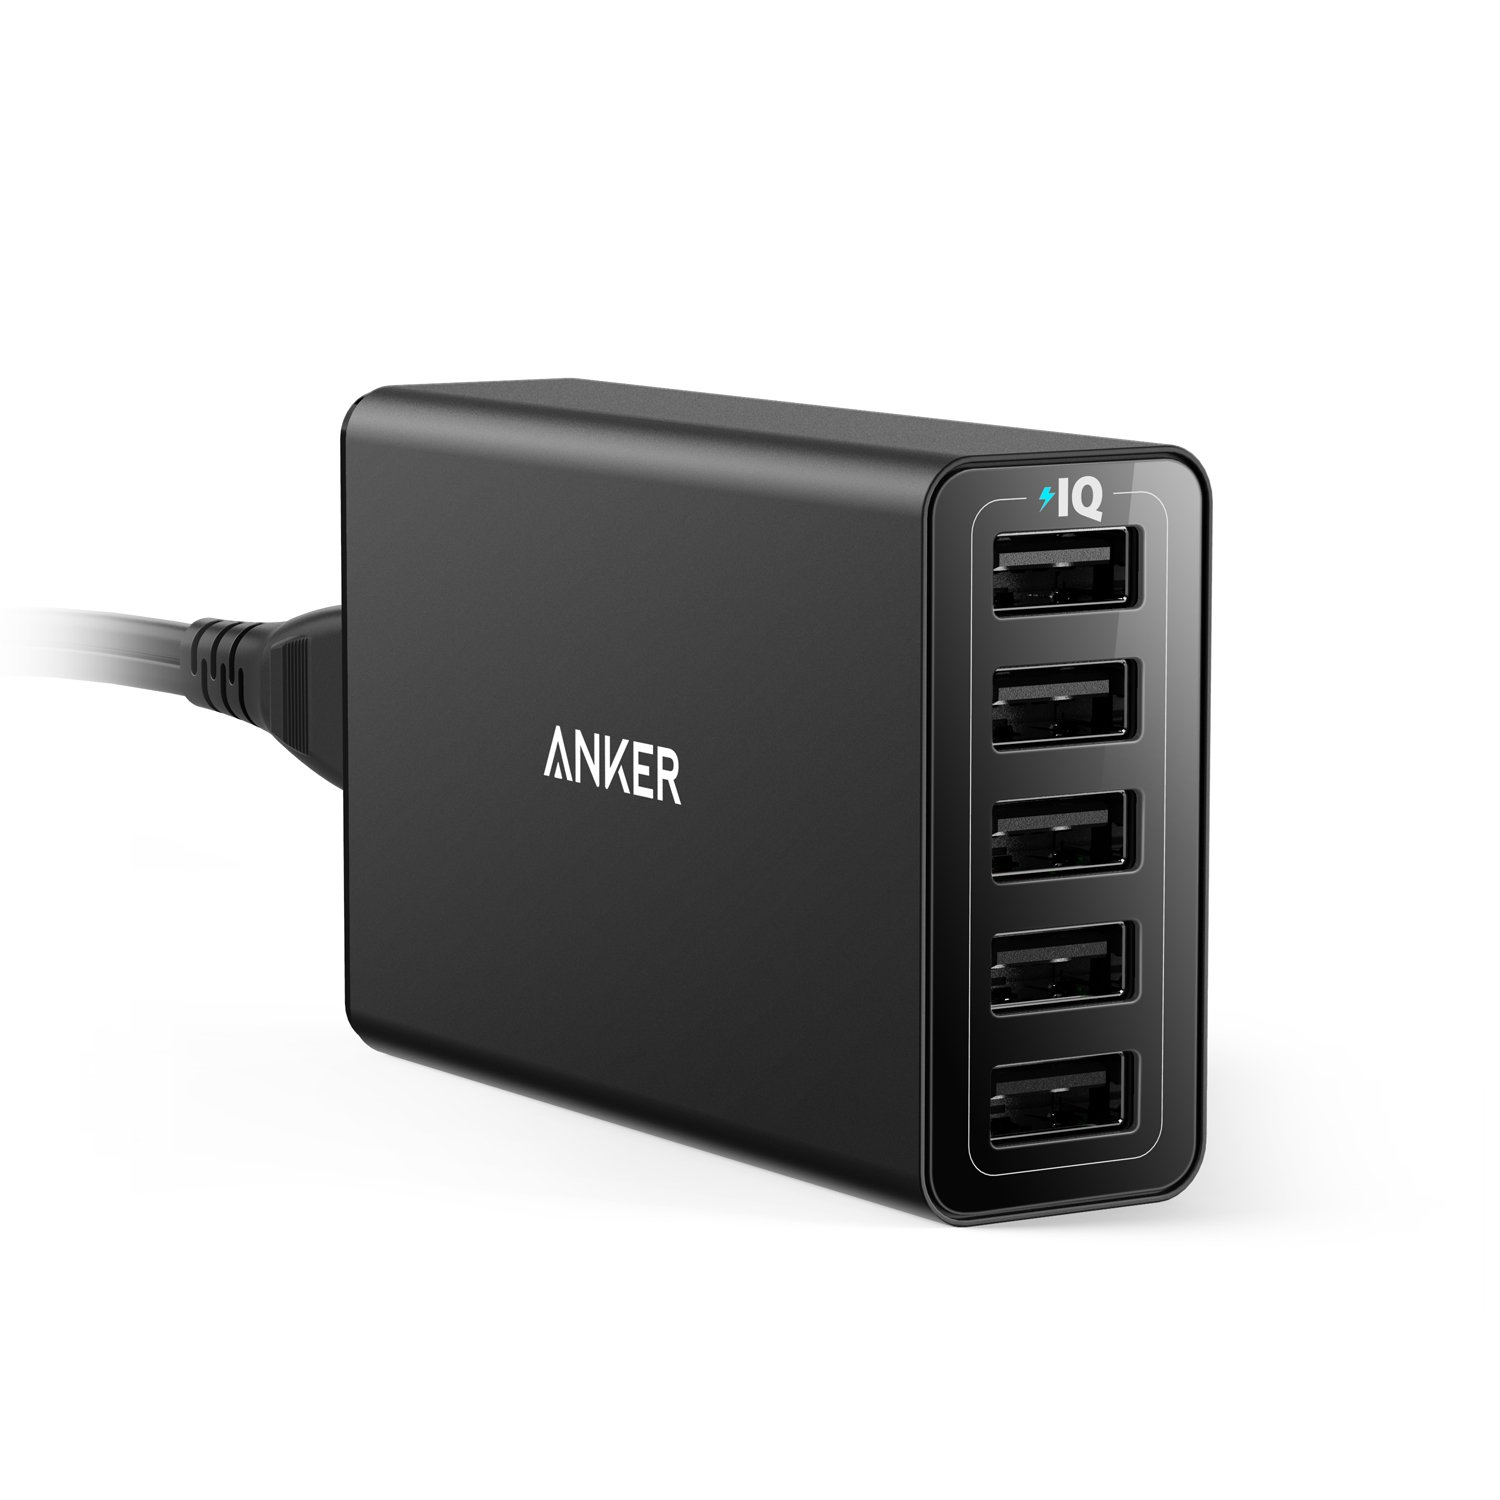 Anker 40W 5-Port USB Wall Charger, PowerPort 5 for iPhone XS/XS Max/XR/X/8/7/6/Plus, iPad Pro/ Air 2/mini, Galaxy S9/S8/Edge/Plus, Note 8/7, LG, Nexus, HTC and More by Anker